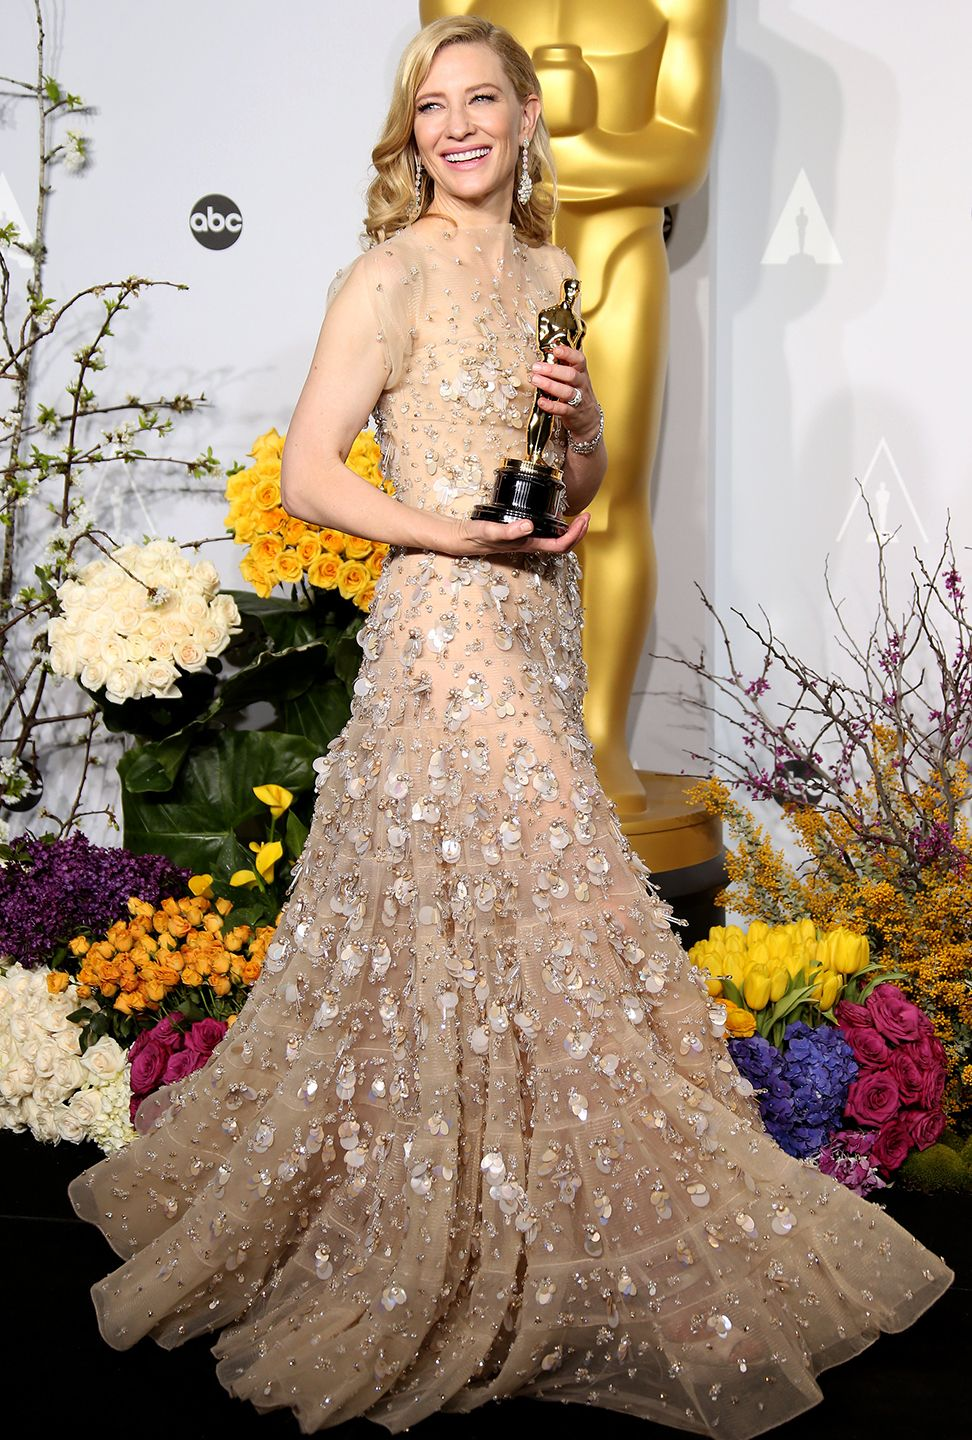 4a7b904063b65 Cate Blanchett in the Press Room in 2014 with her Best Actress Oscar for